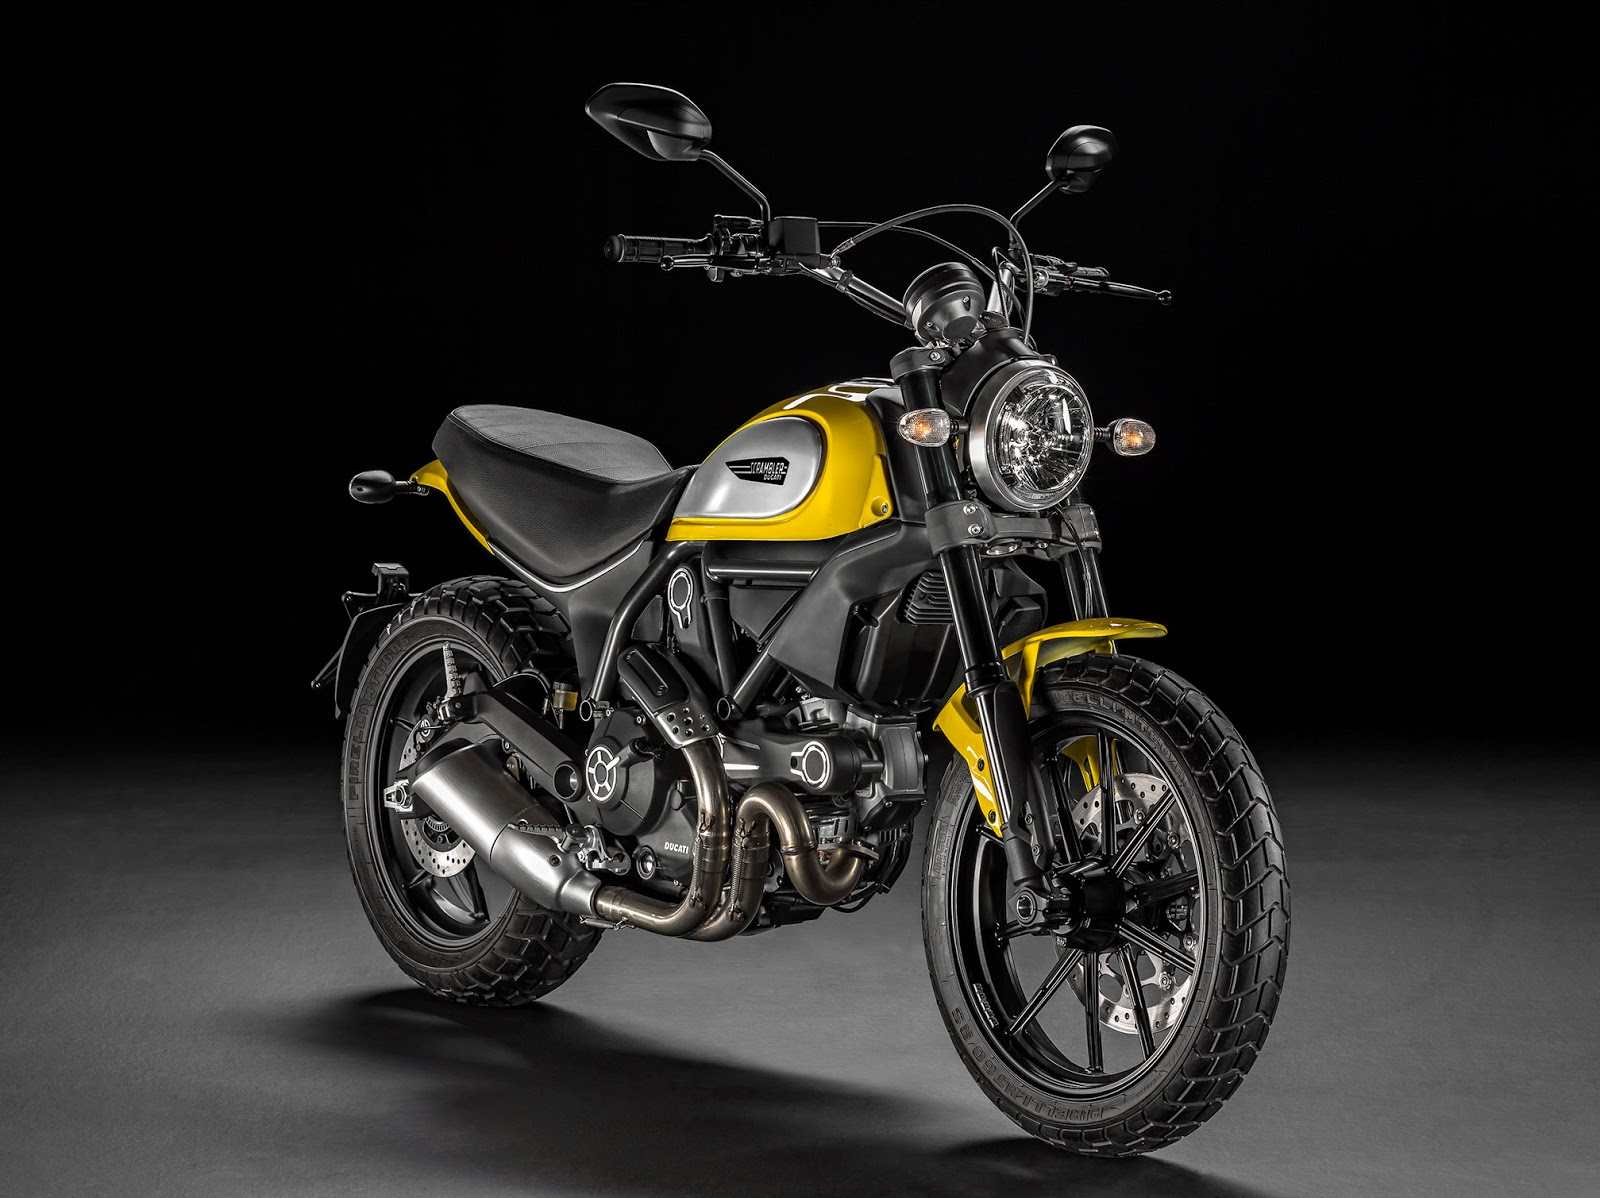 2016 ducati scrambler sixty2 hd wallpaper - all latest new & old car